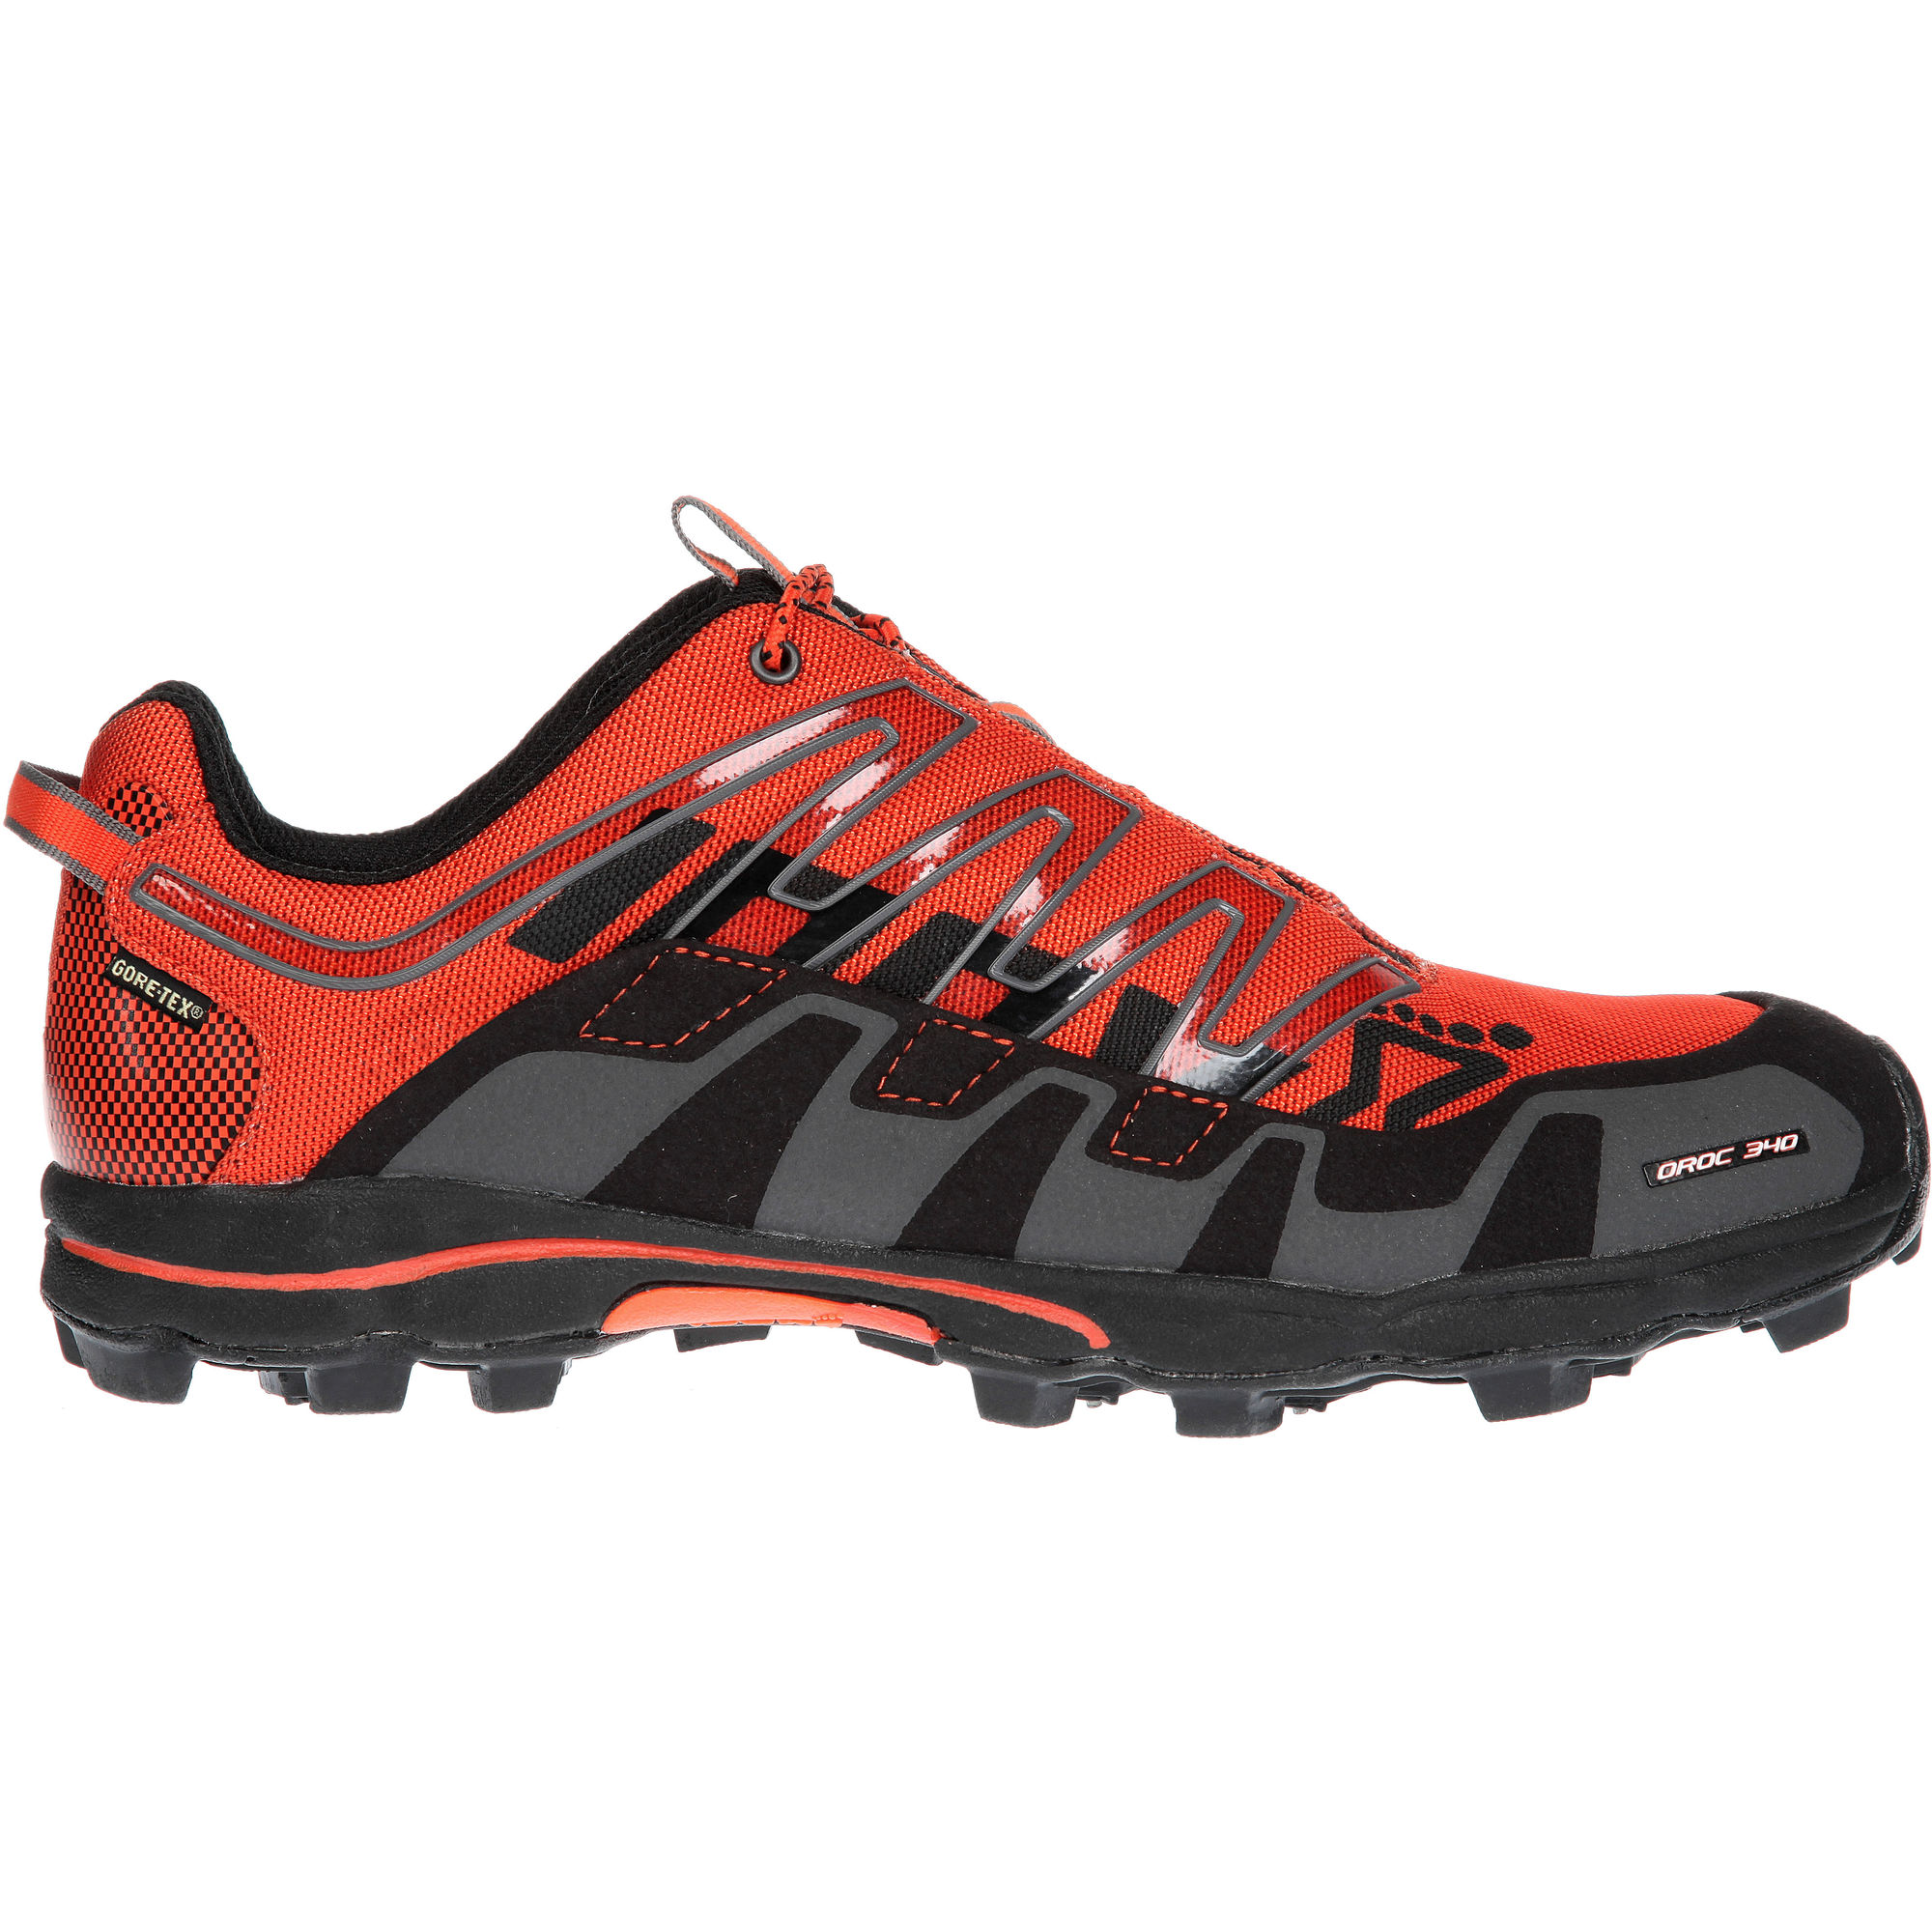 Adidas Terrex Swift Mid Outdoor Shoe Northstorm